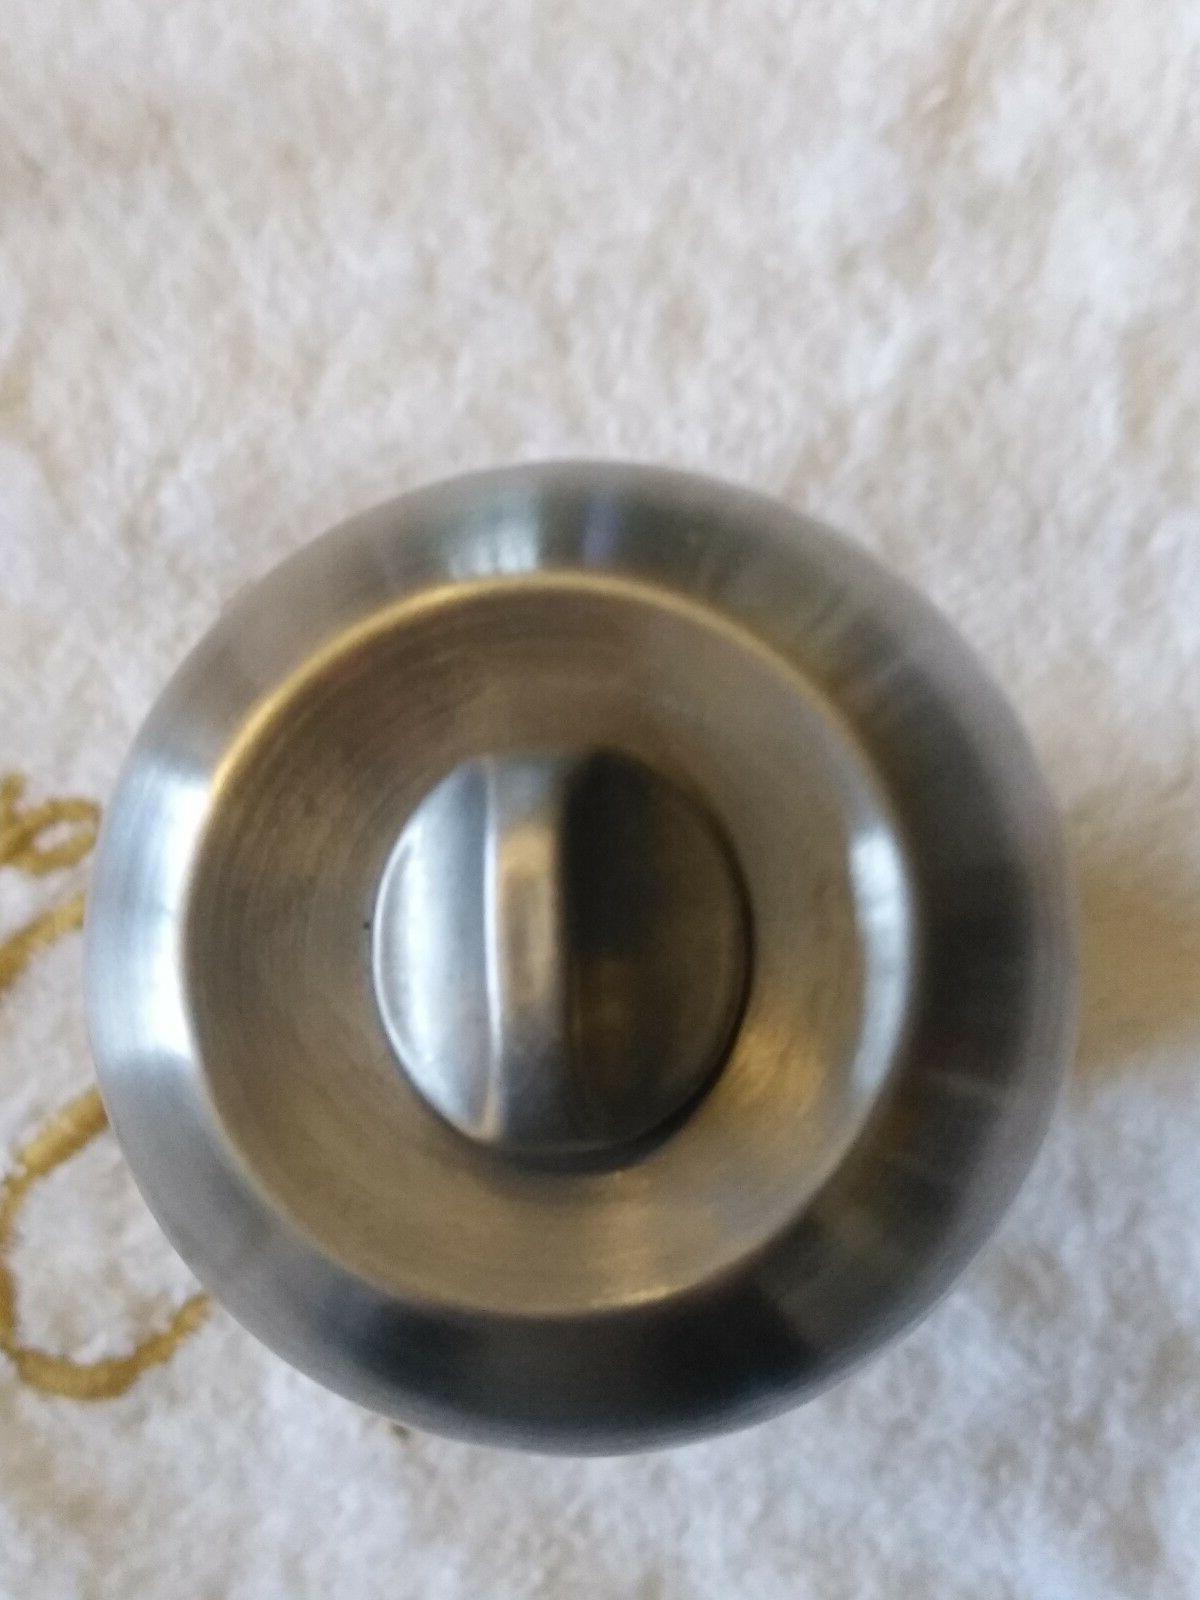 Lot of 10 Nickel Round handle Entry Privacy Knobs